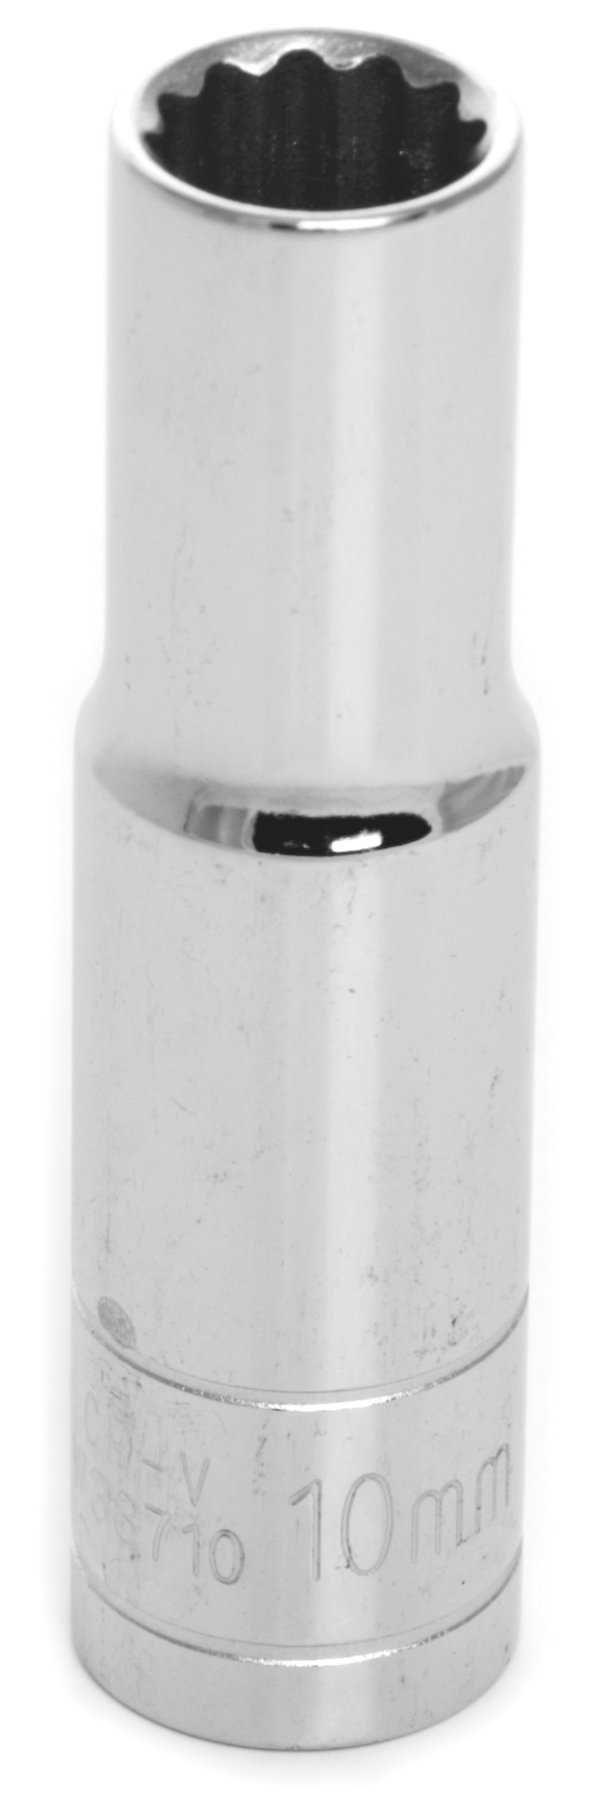 Wilmar W38710 Chrome Socket, 3/8' Drive, 10mm, 12 Point, Deep